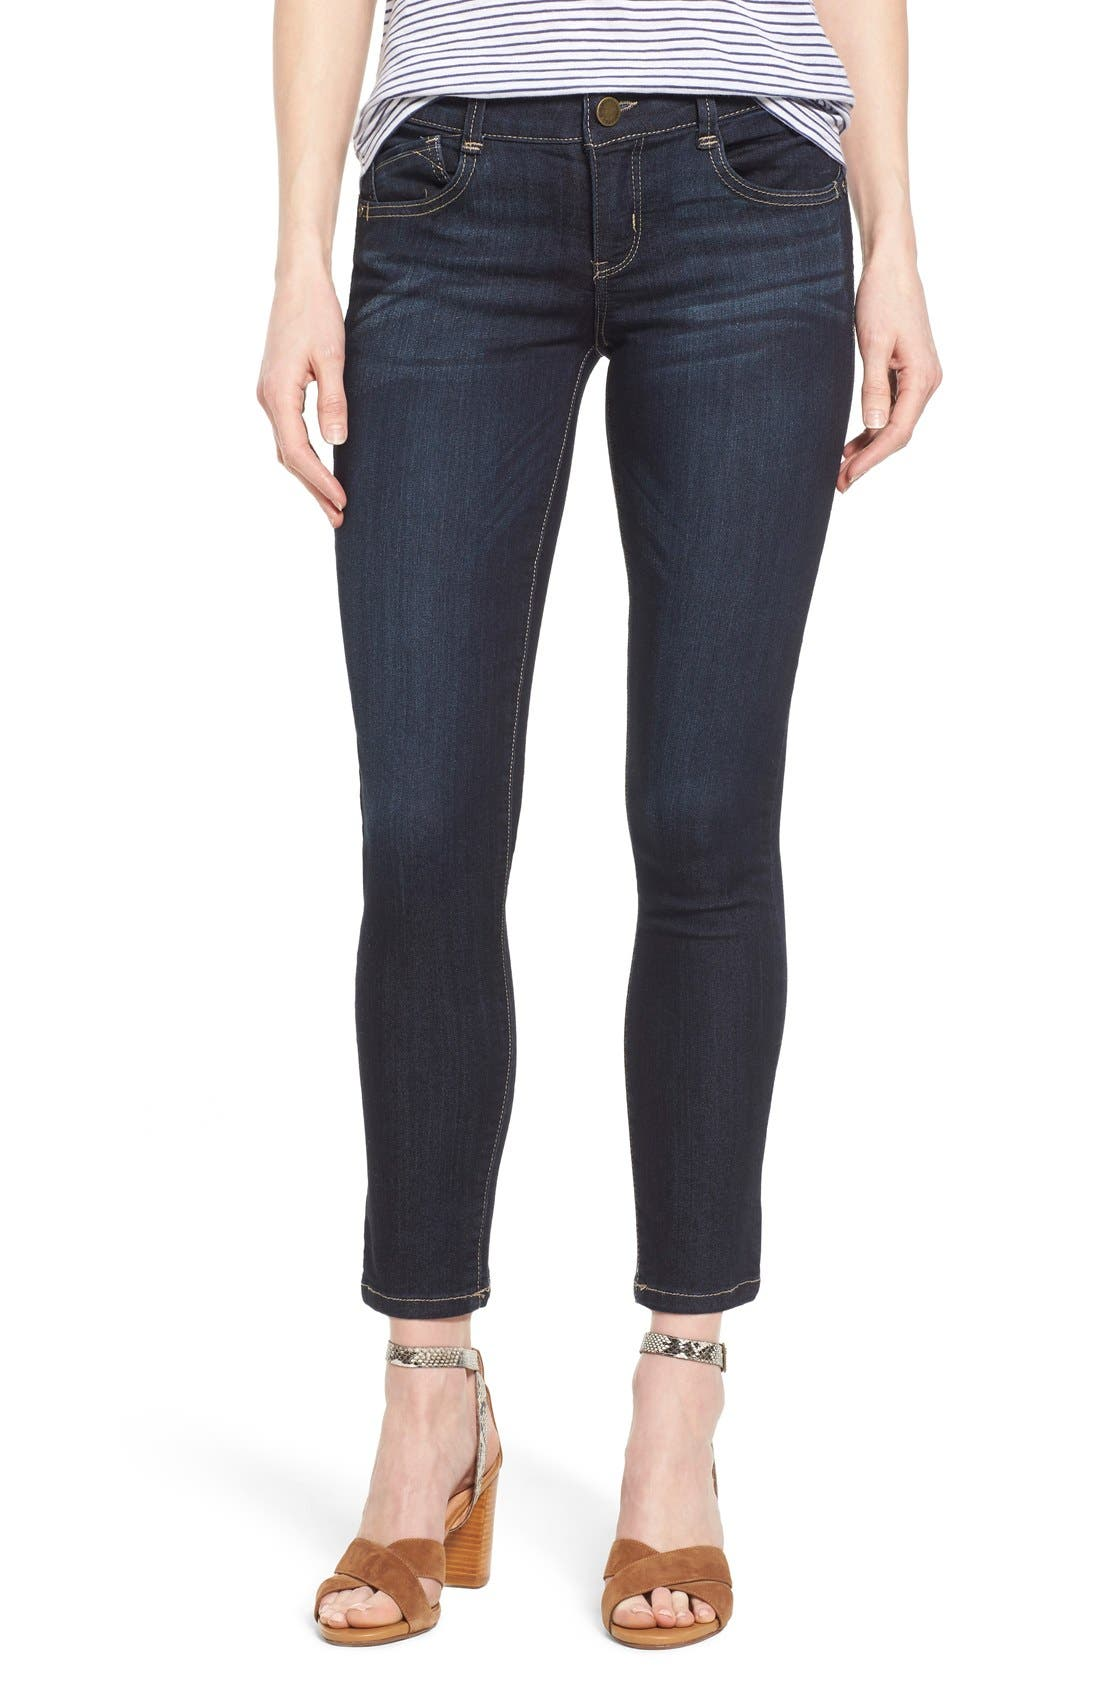 Wit & Wisdom 'Ab Solution' Stretch Ankle Skinny Jeans (Regular & Petite) (Nordstrom Exclusive)